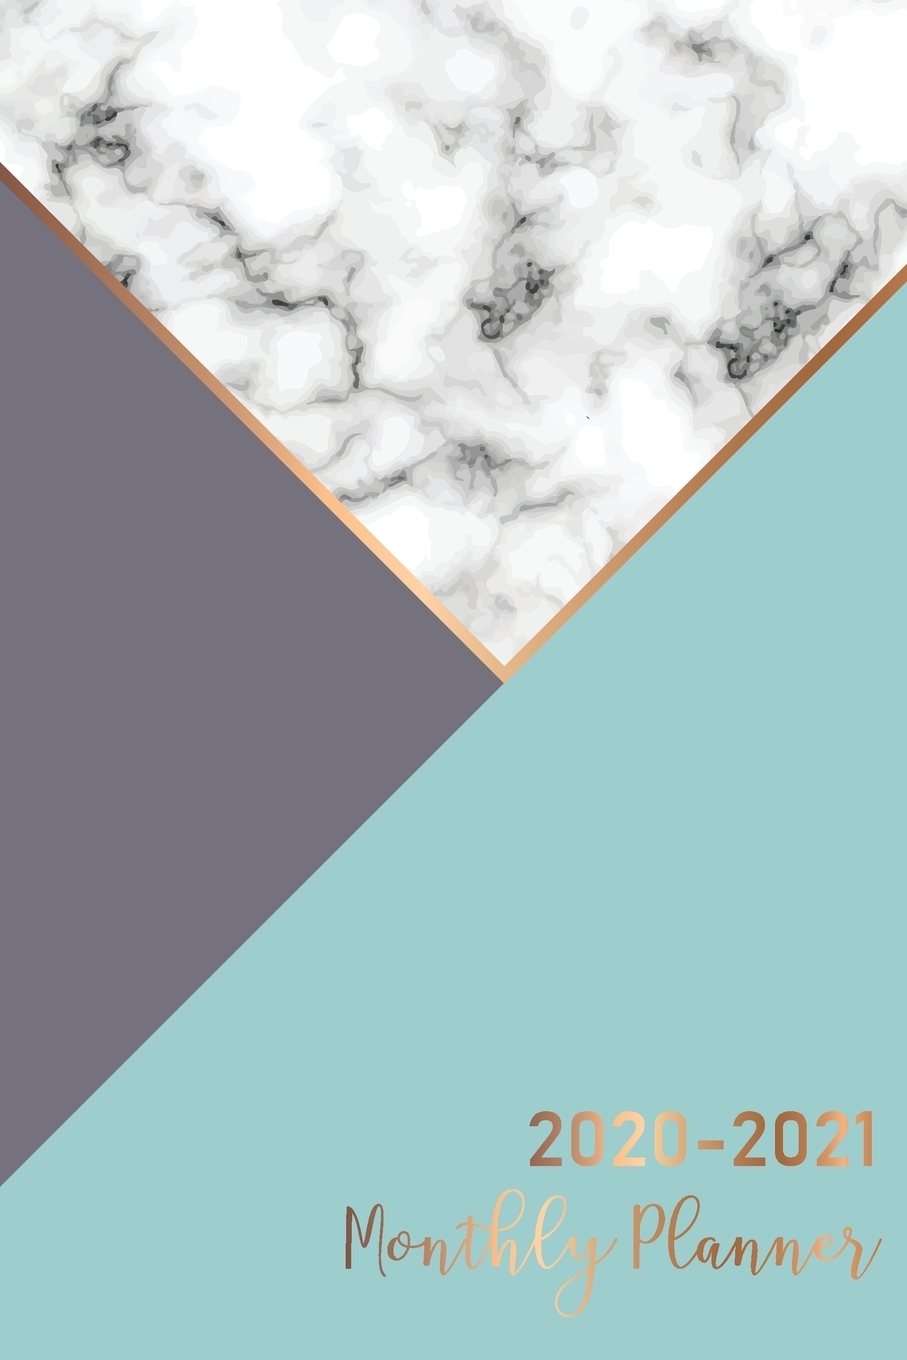 2020-2021 Daily Monthly Calendar Pocket Planner, 24 Months Jan 2020 To Dec  2021: 2020-2021 Monthly Planner: Marble Cover - 2 Year Calendar 2020-2021 for 2021-2021 Monthly Two Year Planner: